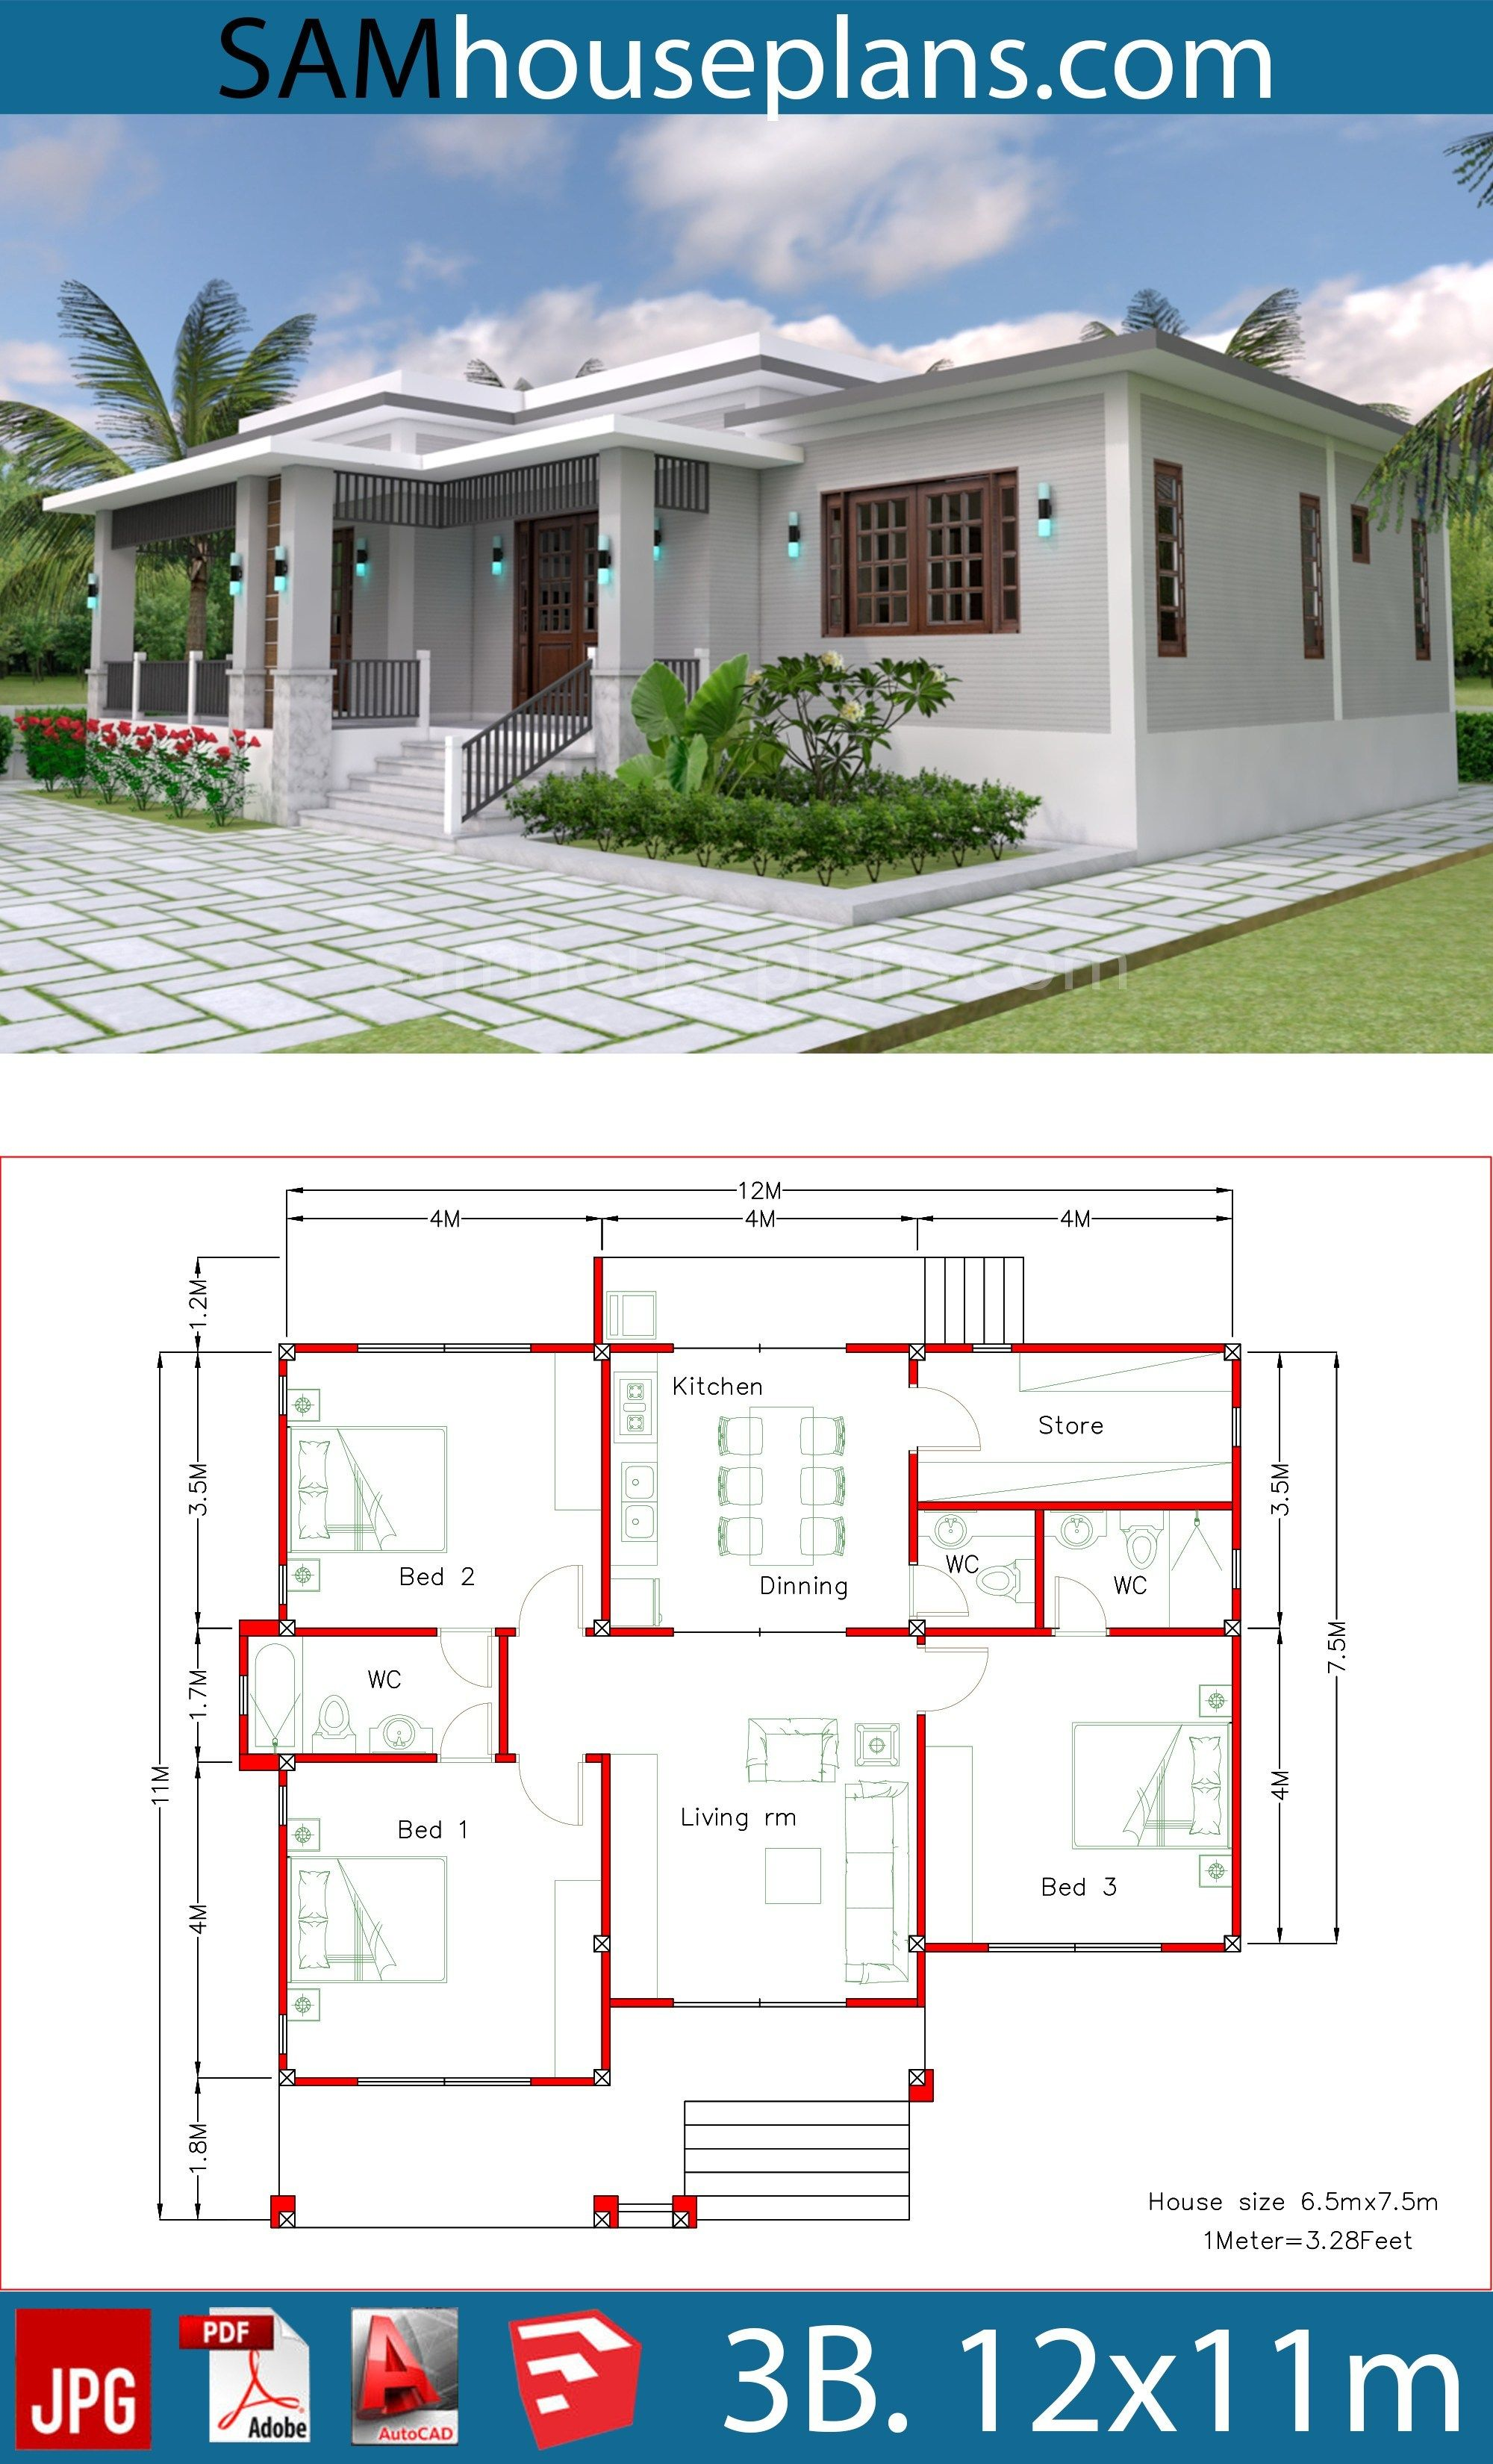 House Plans 12x11m With 3 Bedrooms Sam House Plans House Plan Gallery Beautiful House Plans House Construction Plan